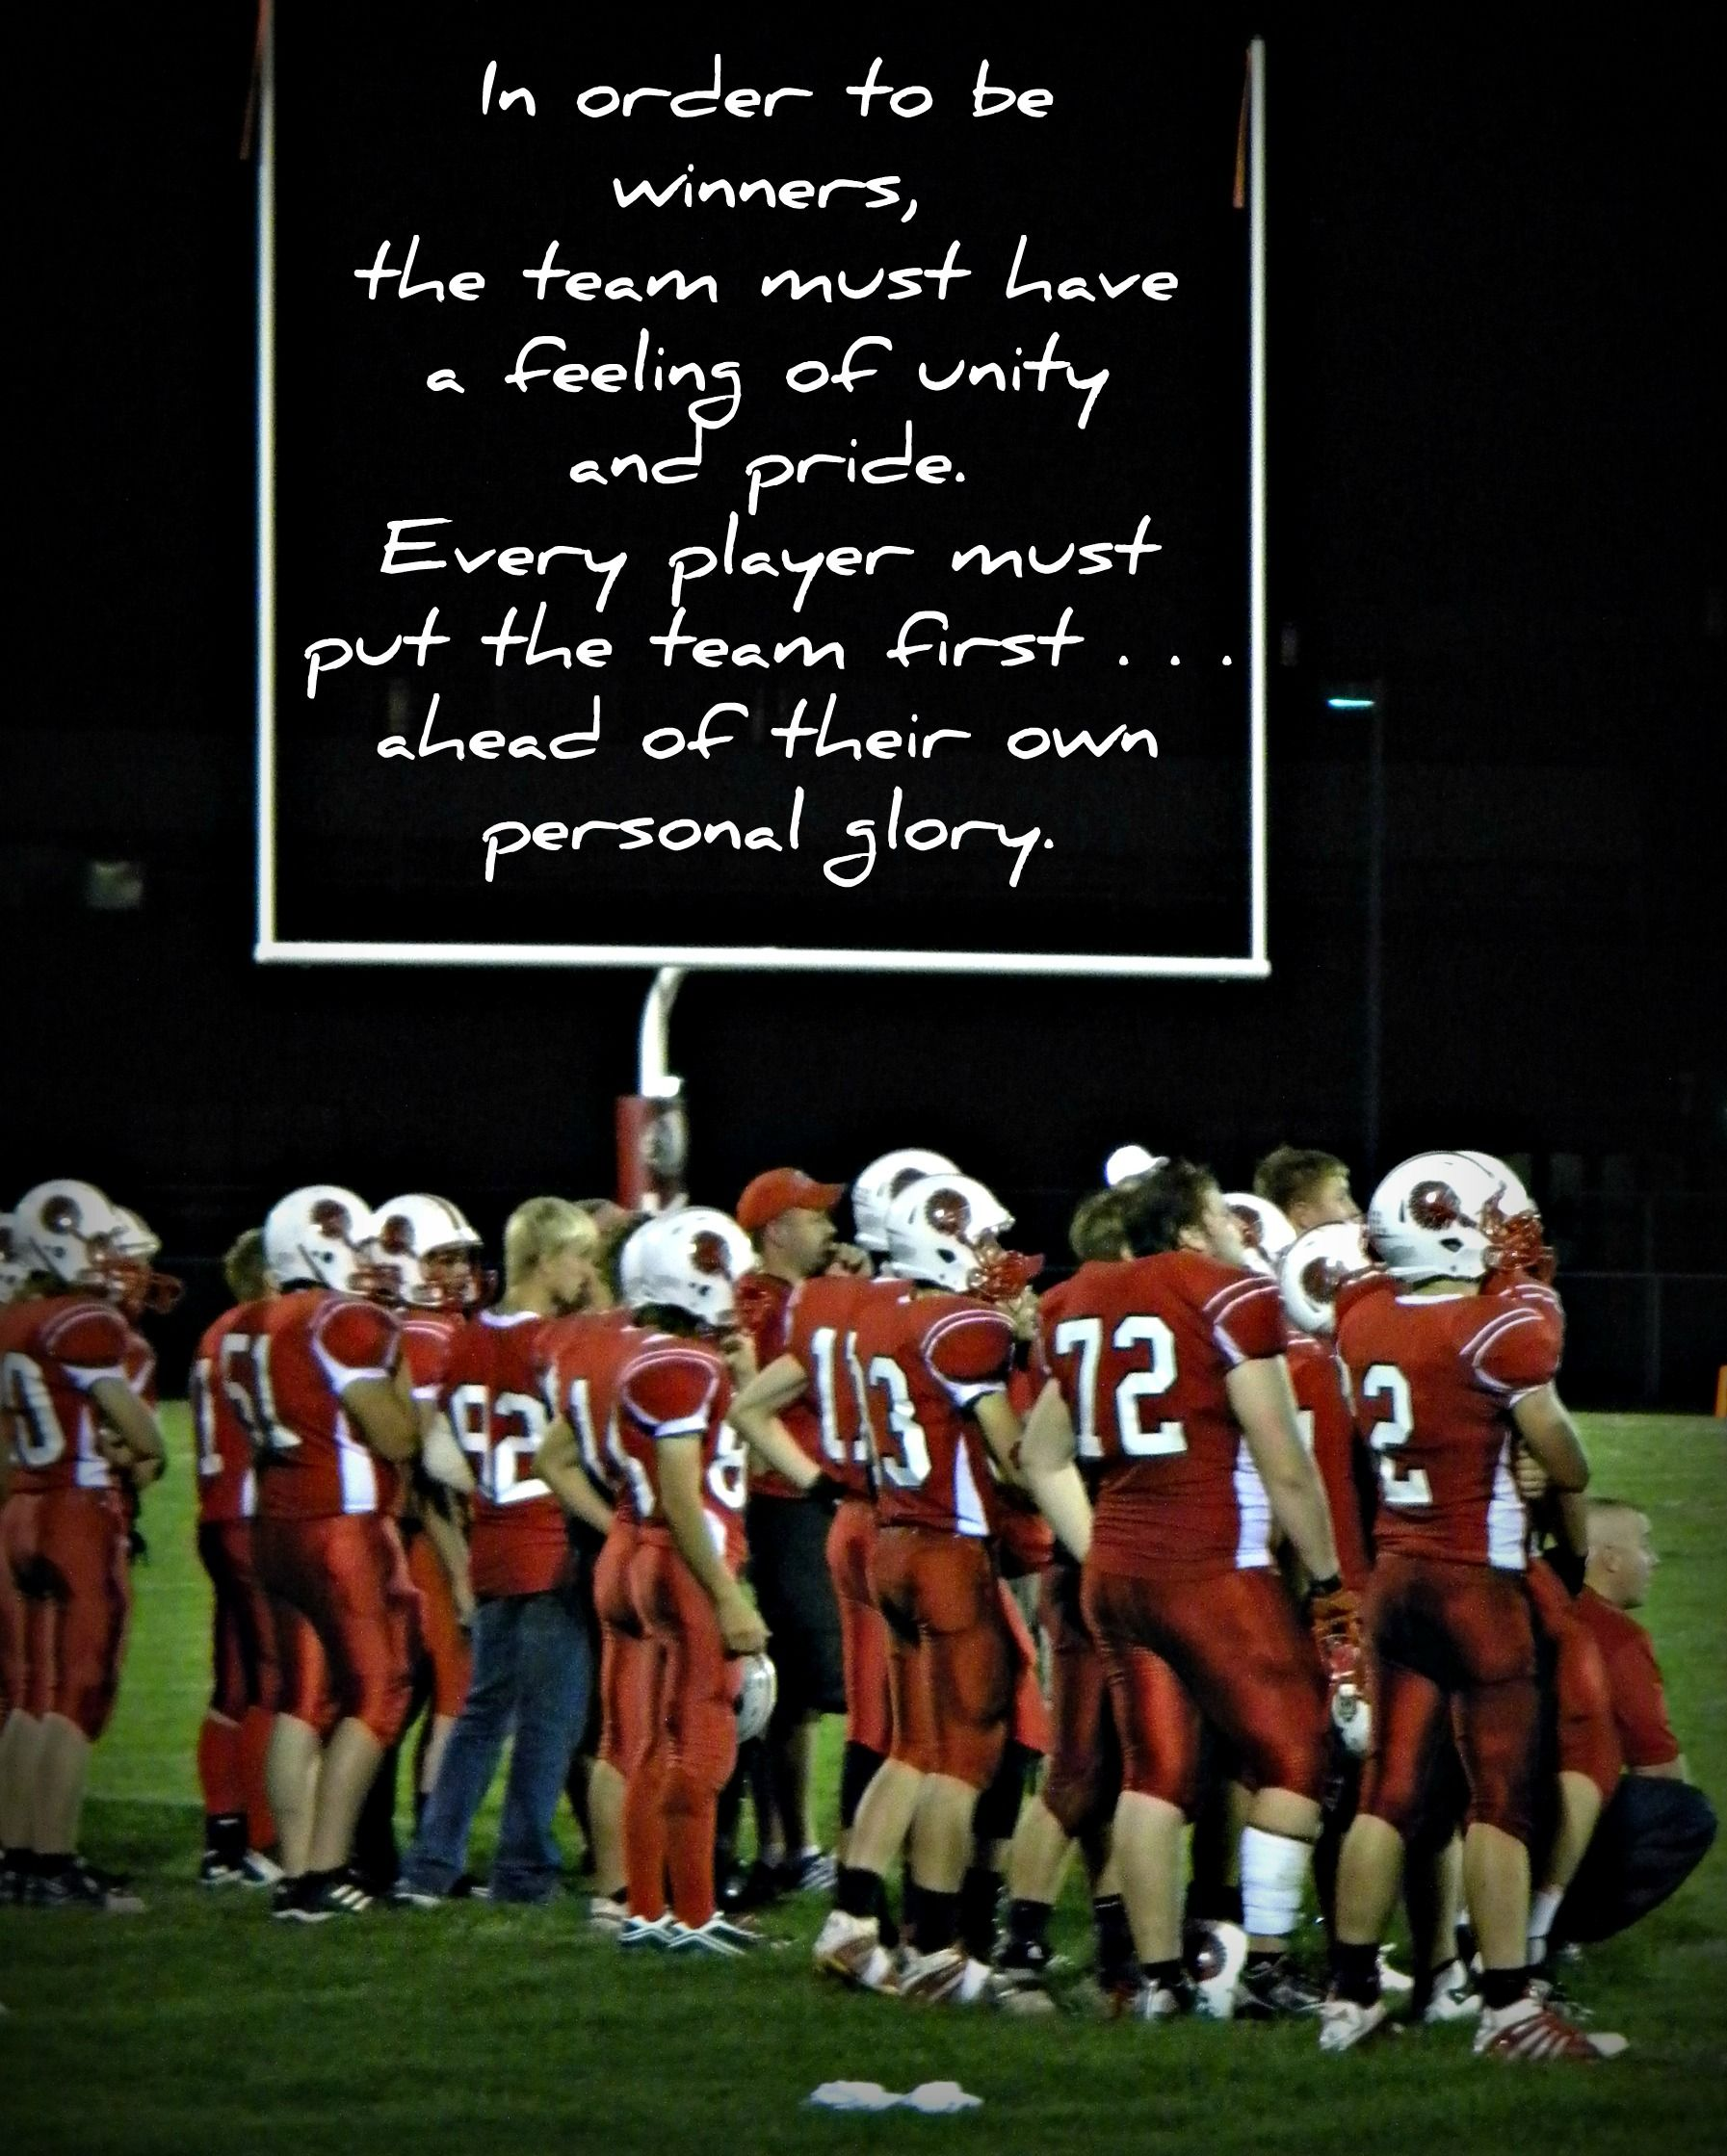 Motivational Quotes For Football Players: Sports Motivational Quotes